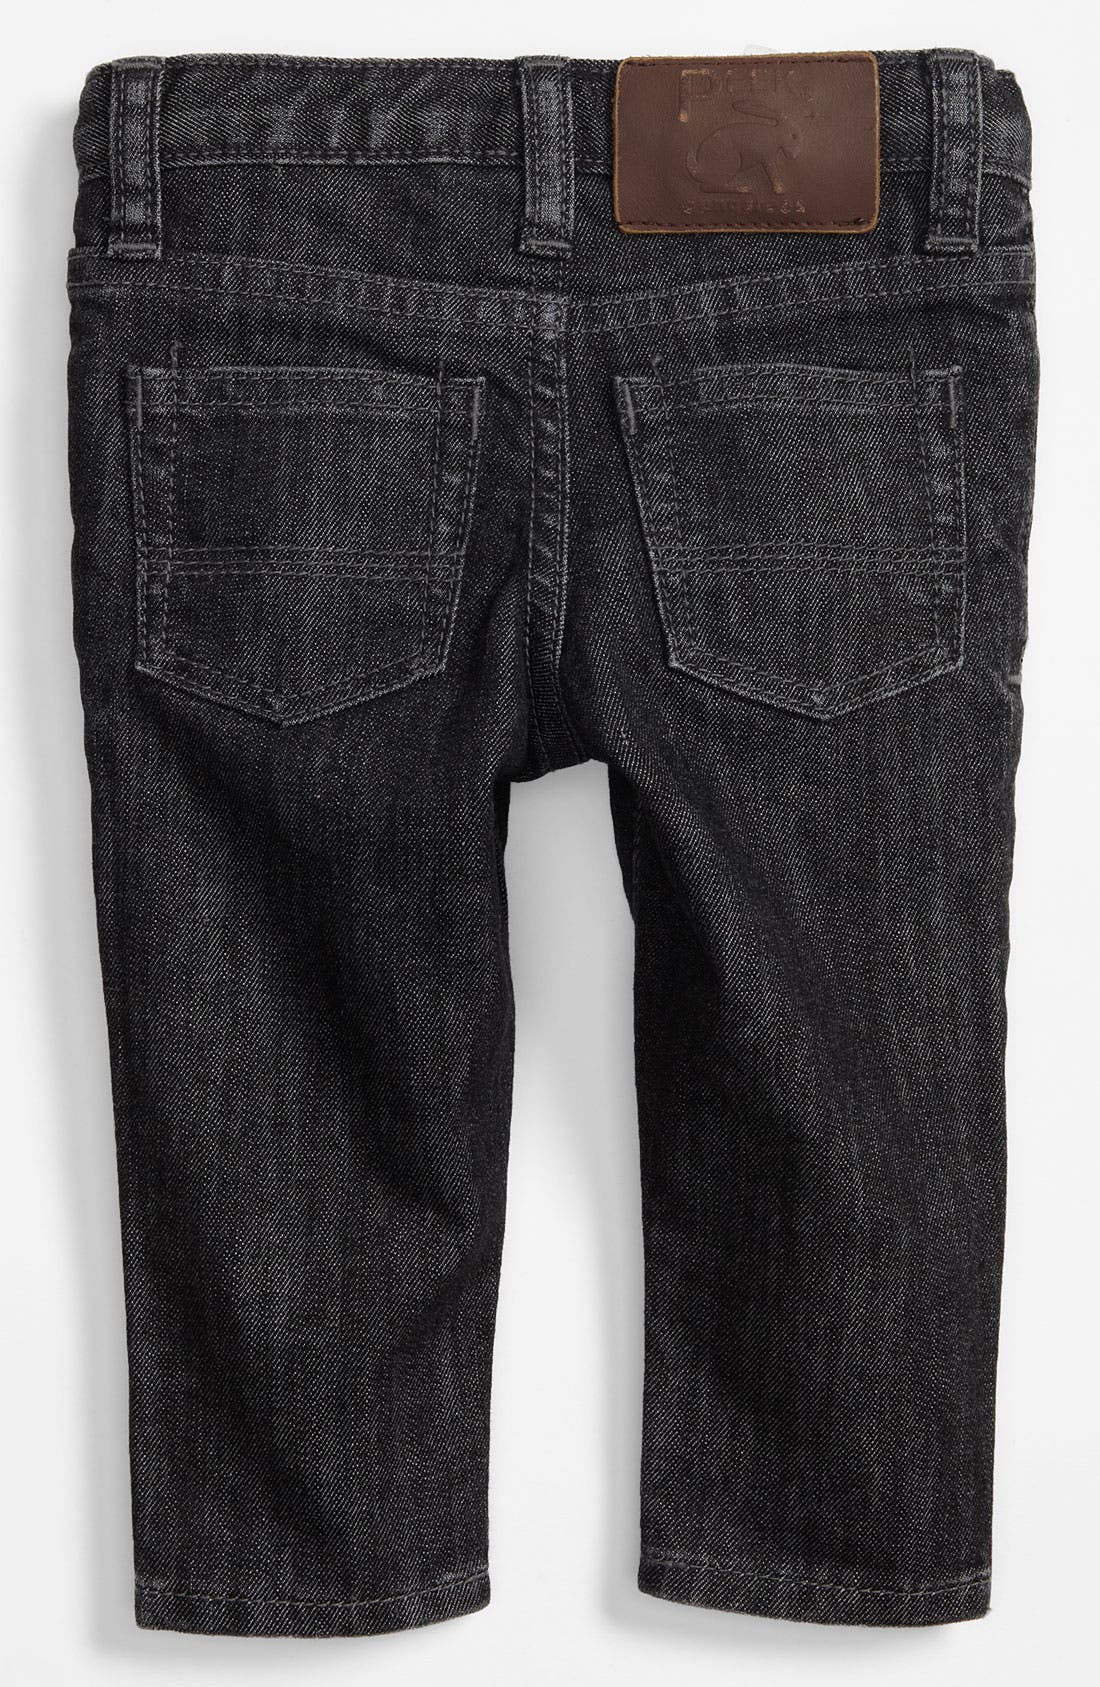 Alternate Image 1 Selected - Peek 'Slouch' Jeans (Infant)